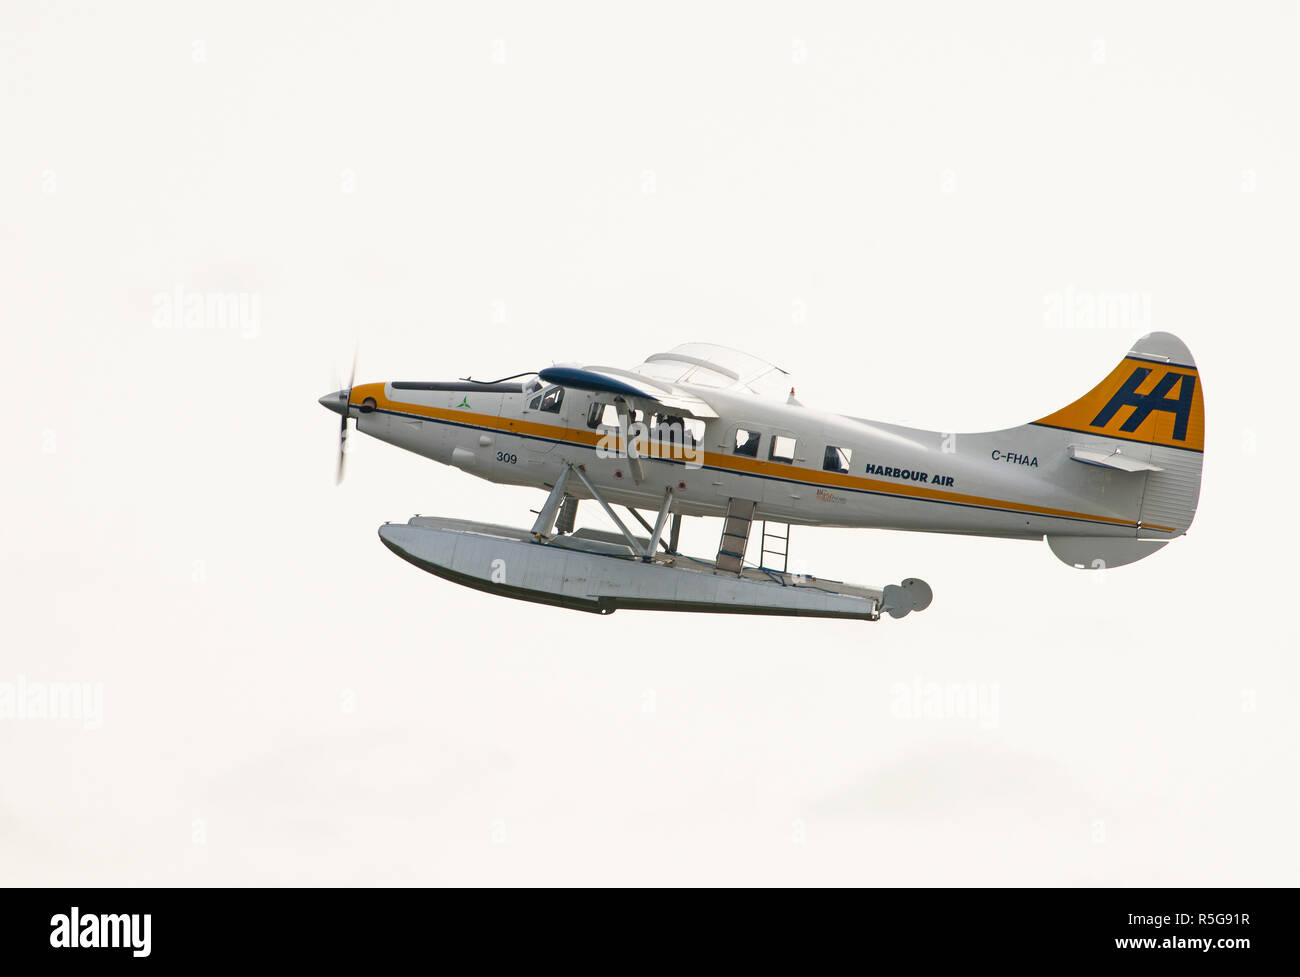 A De Havilland Canada DHC-3T Vazar Turbine Otter C-FHAA  departing the waterways  in Vancouver city harbour in British Columbia Canada. Stock Photo